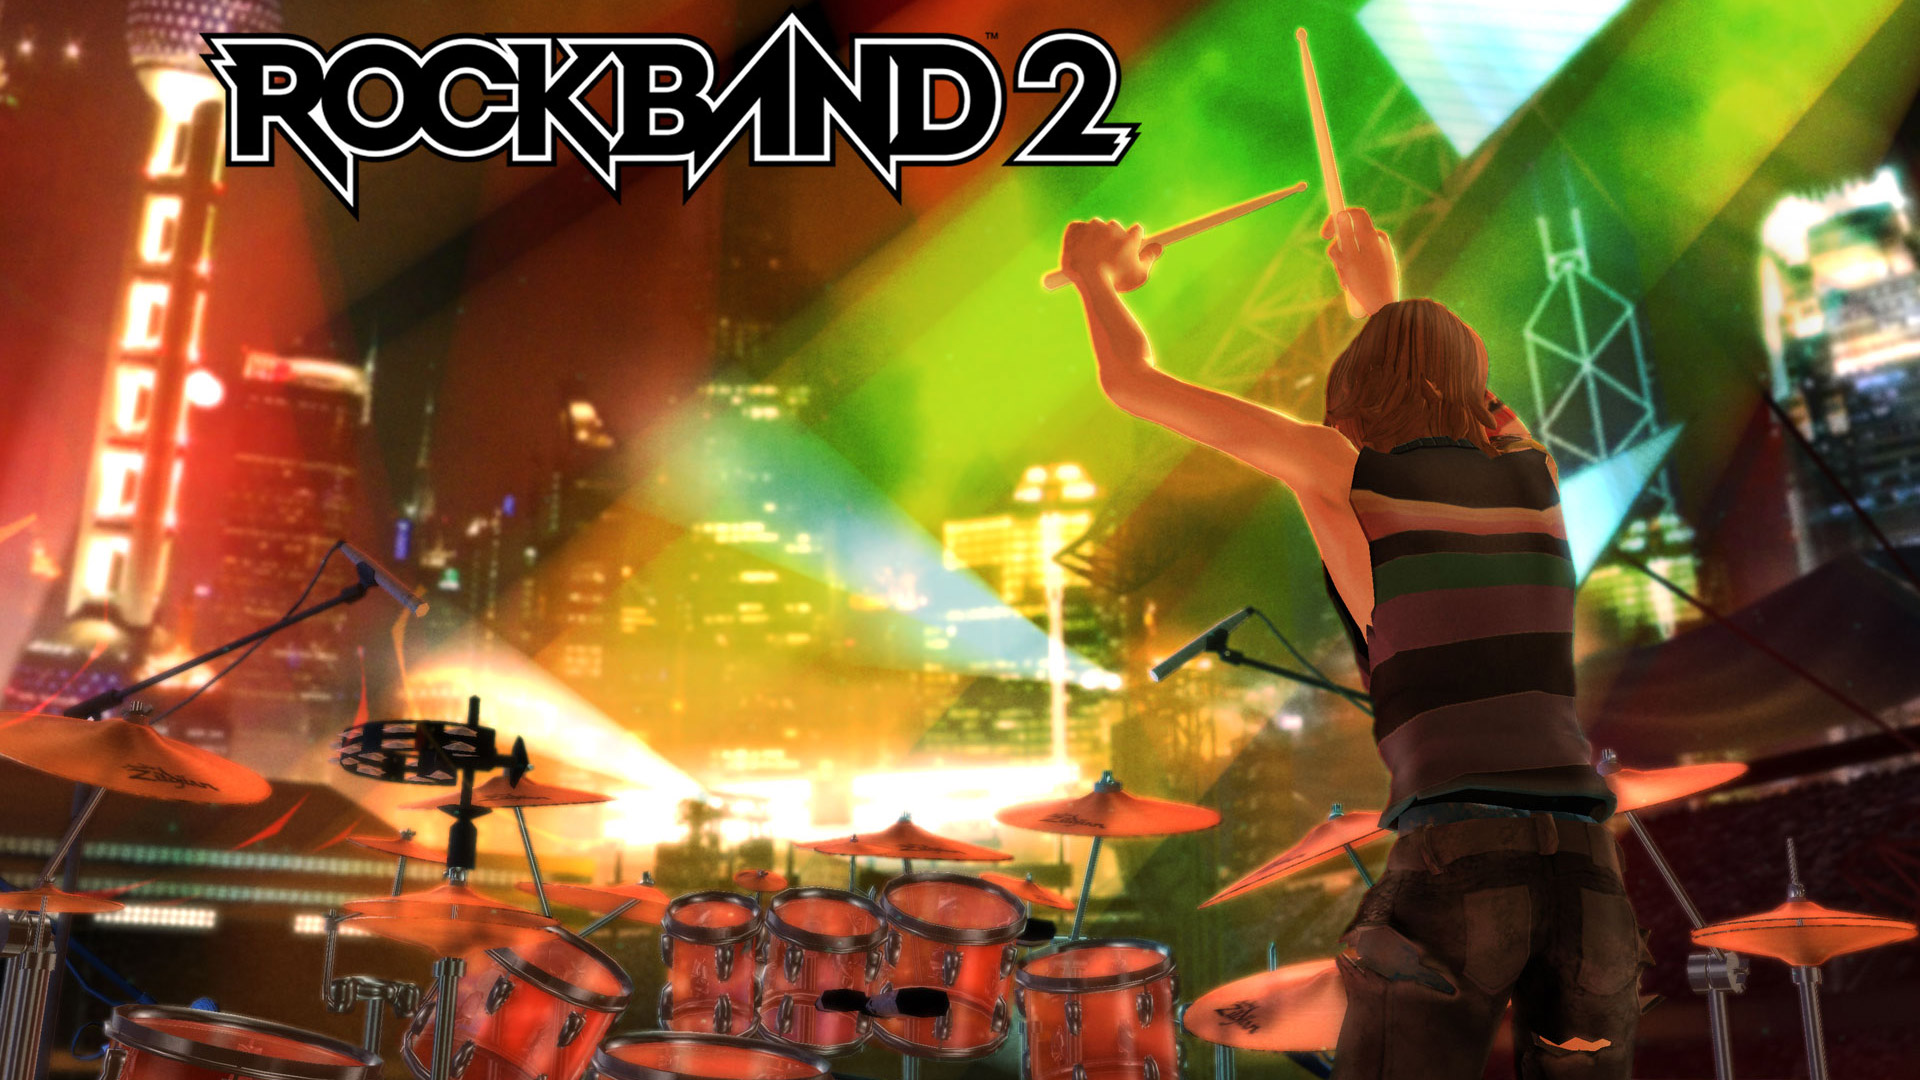 Rock Band 2 Wallpaper in 1920x1080